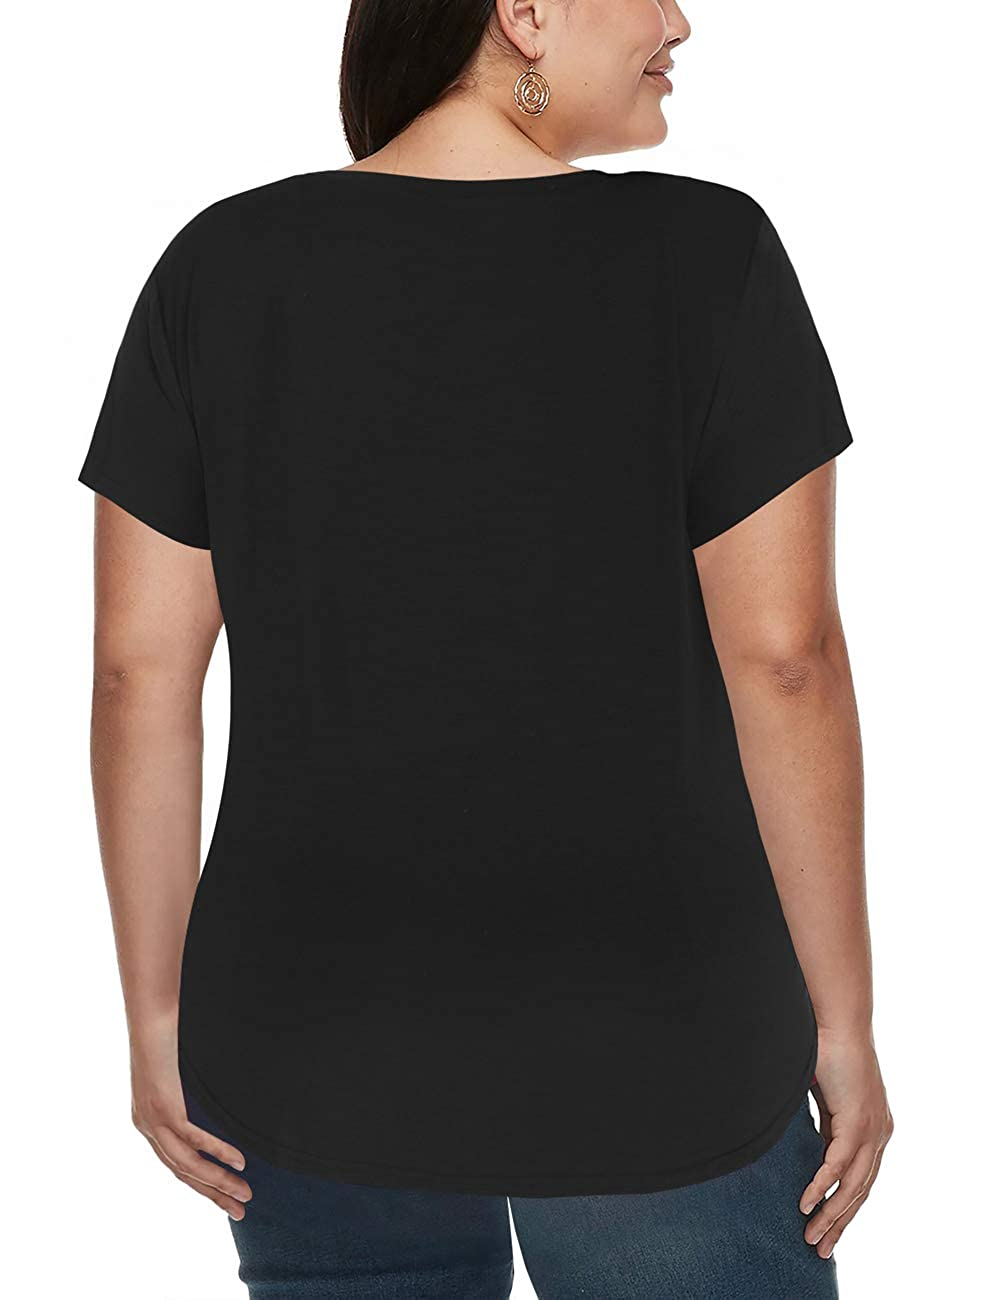 1eea88a69903a liher Women s Plus Size Tops Casual V Neck Short Sleeve Summer T Shirts  1X-5X at Amazon Women s Clothing store